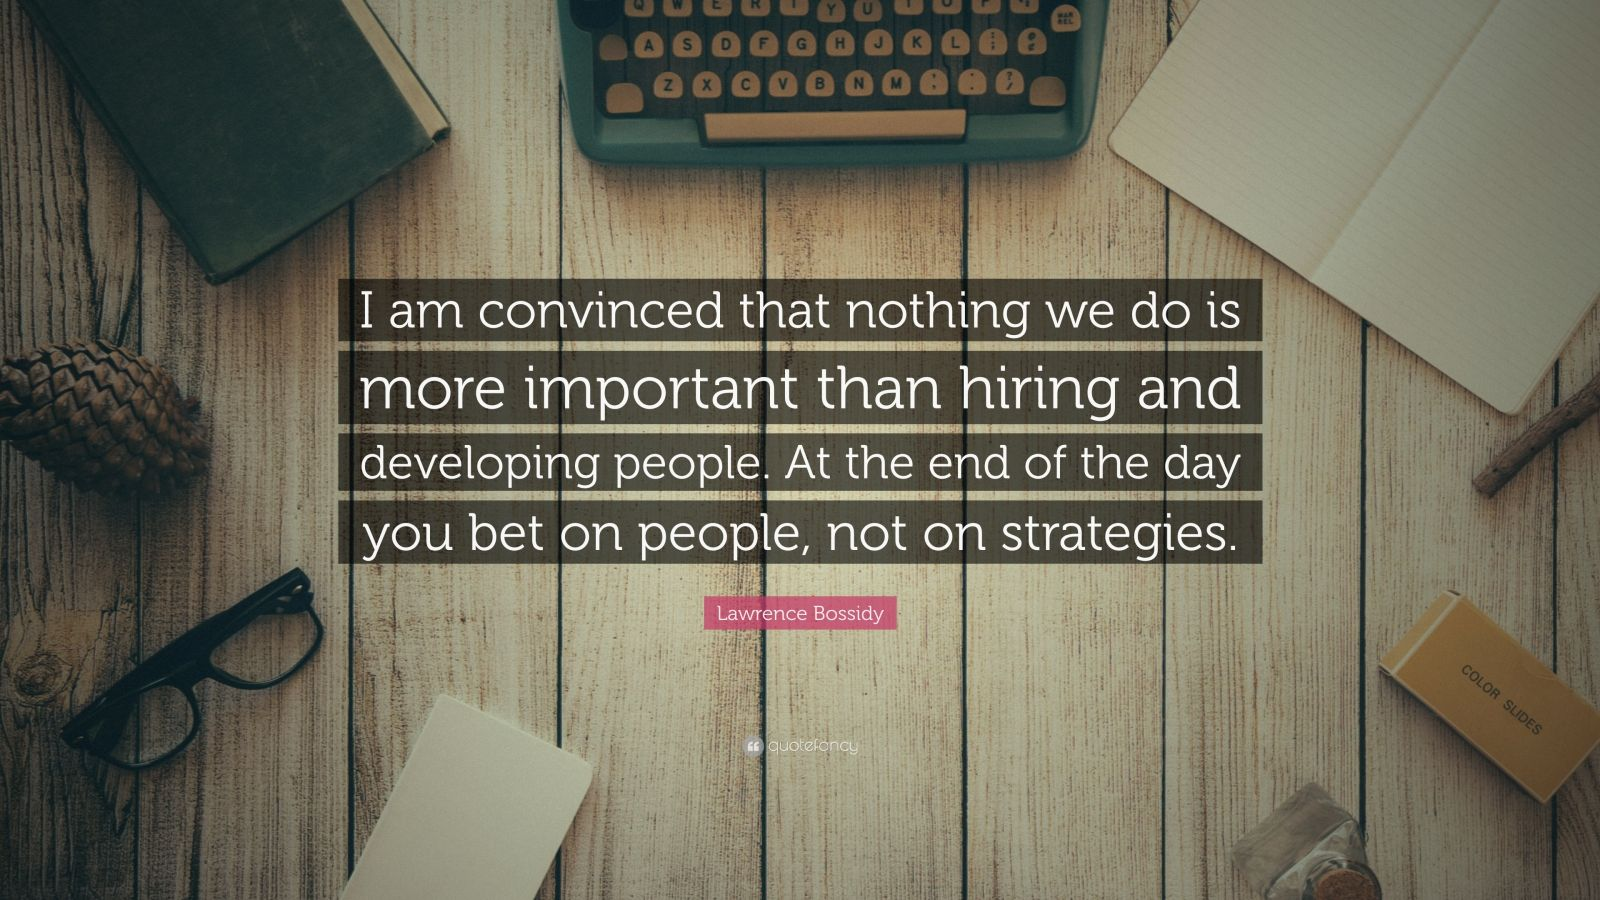 """Lawrence Bossidy Quote: """"I am convinced that nothing we do is more important than hiring and developing people. At the end of the day you bet on people, not on strategies."""""""